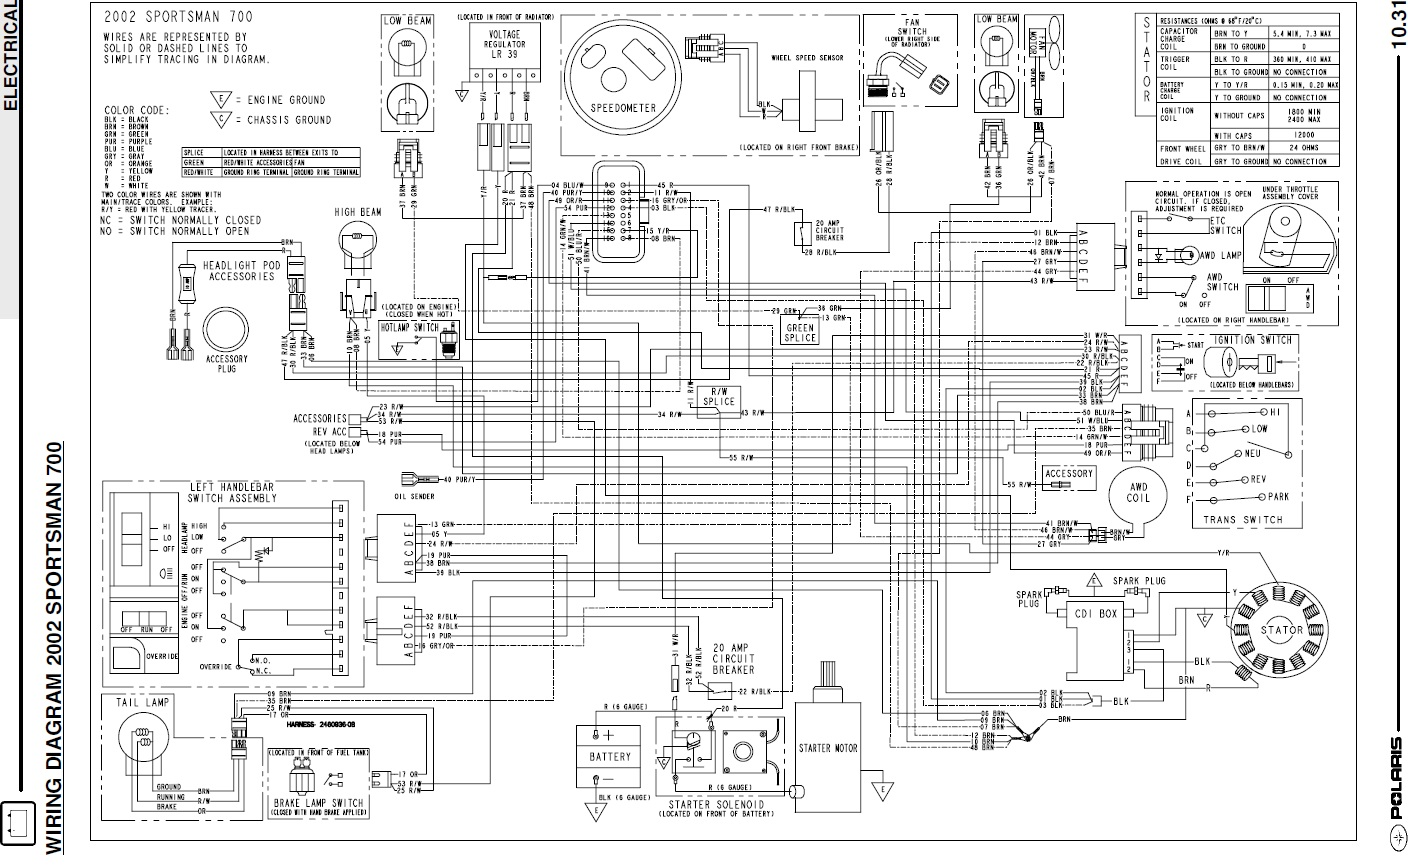 polaris electrical wiring diagram for rzr polaris electrical polaris electrical wiring diagram for rzr 800 wiring diagram polaris the wiring diagram